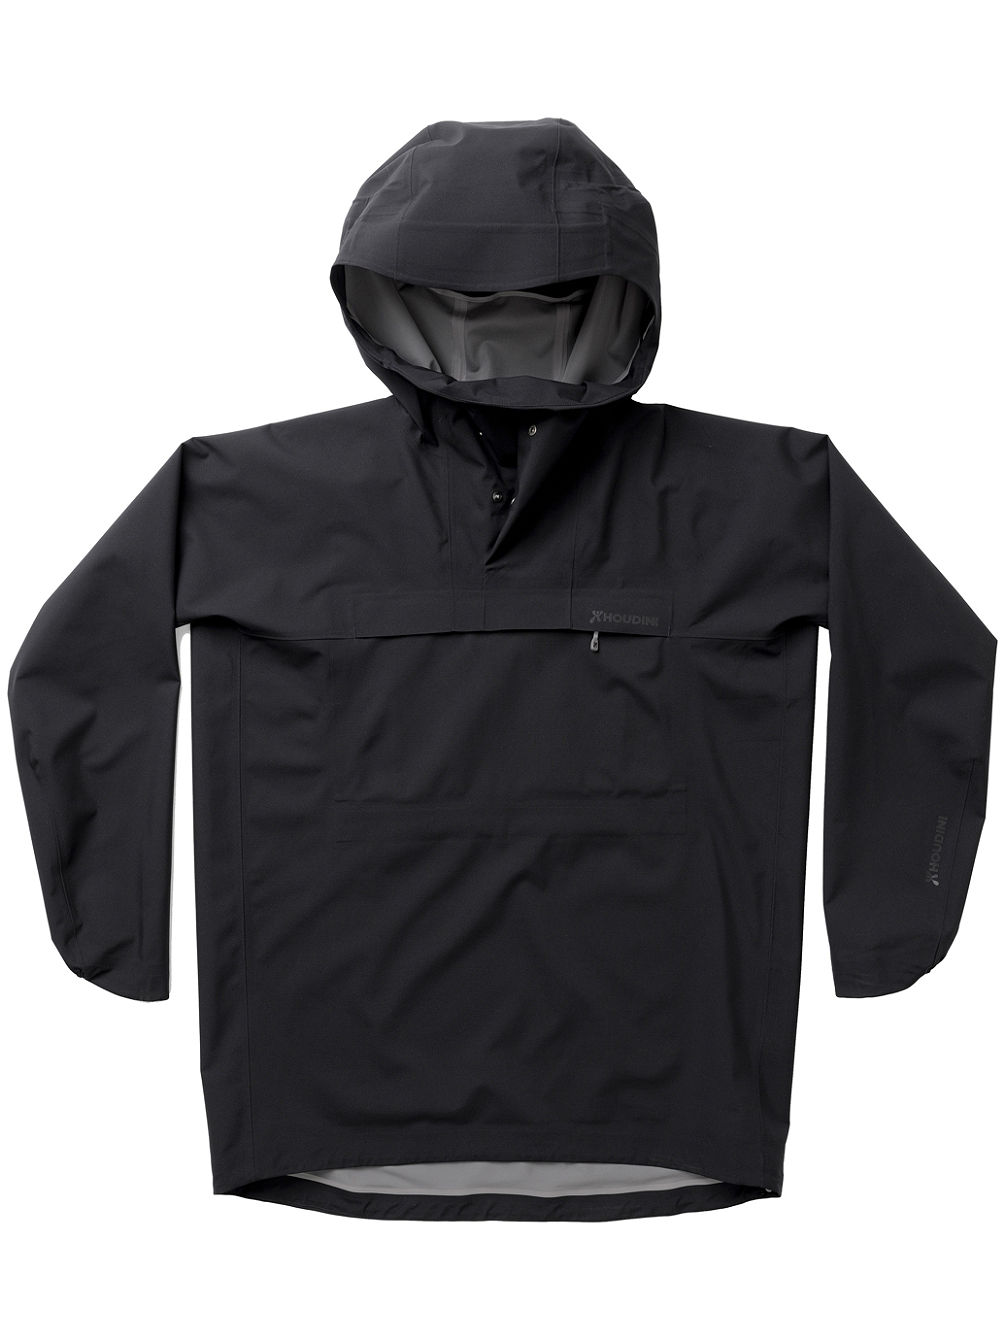 The Shelter Anorak